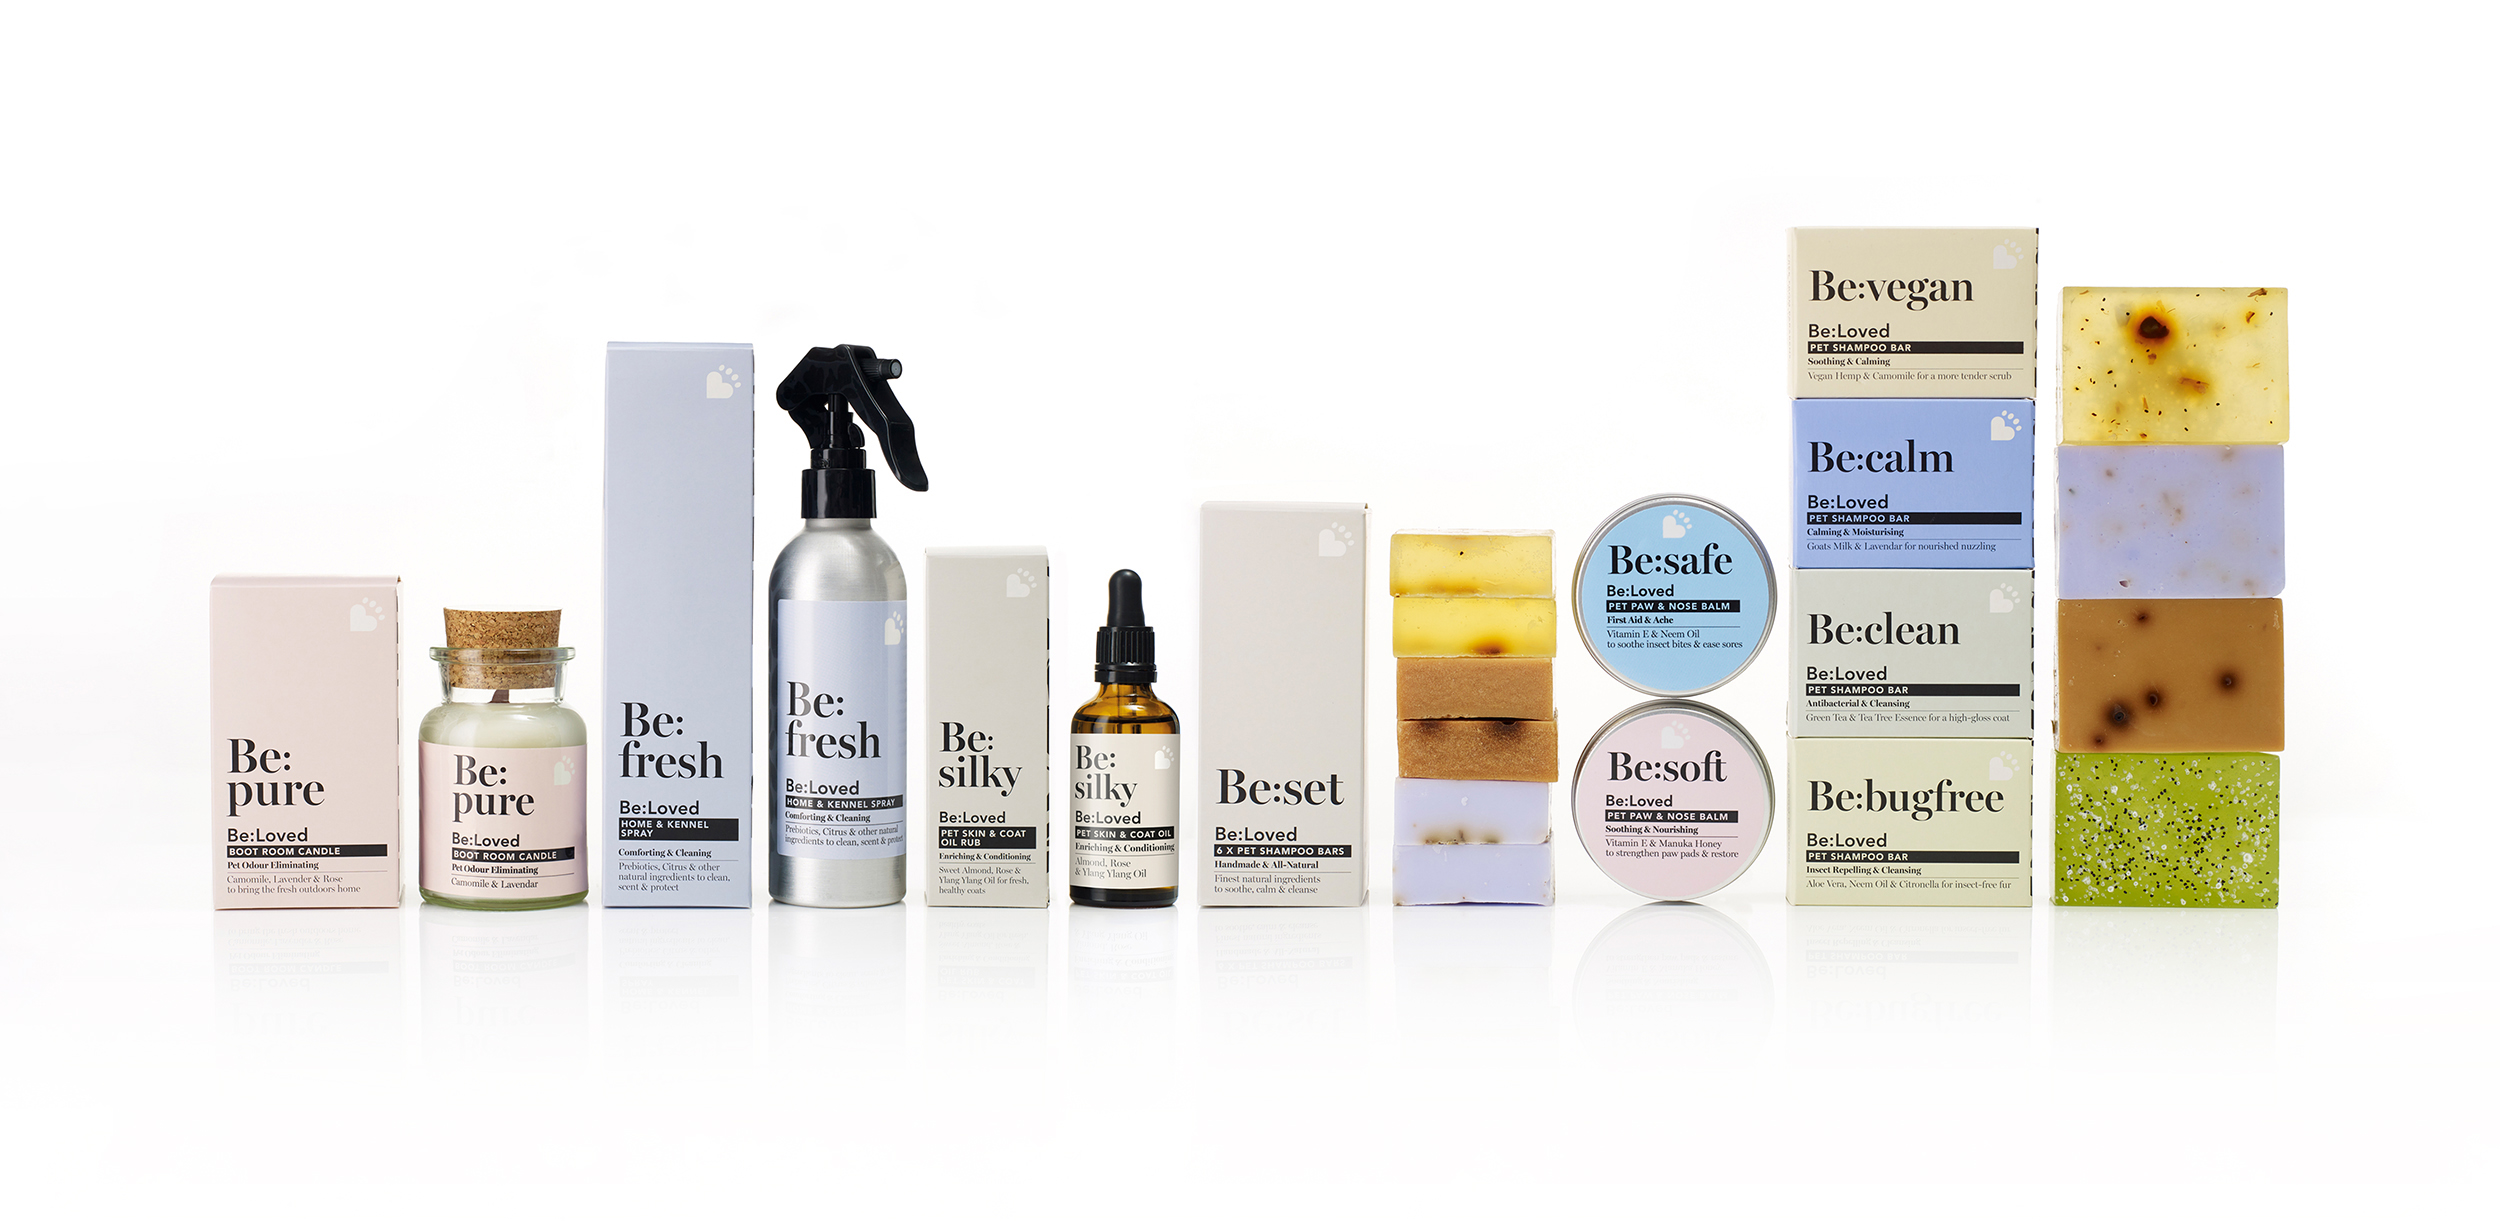 Be:Loved Luxury Pet Care Brand Creation by Popp Studio